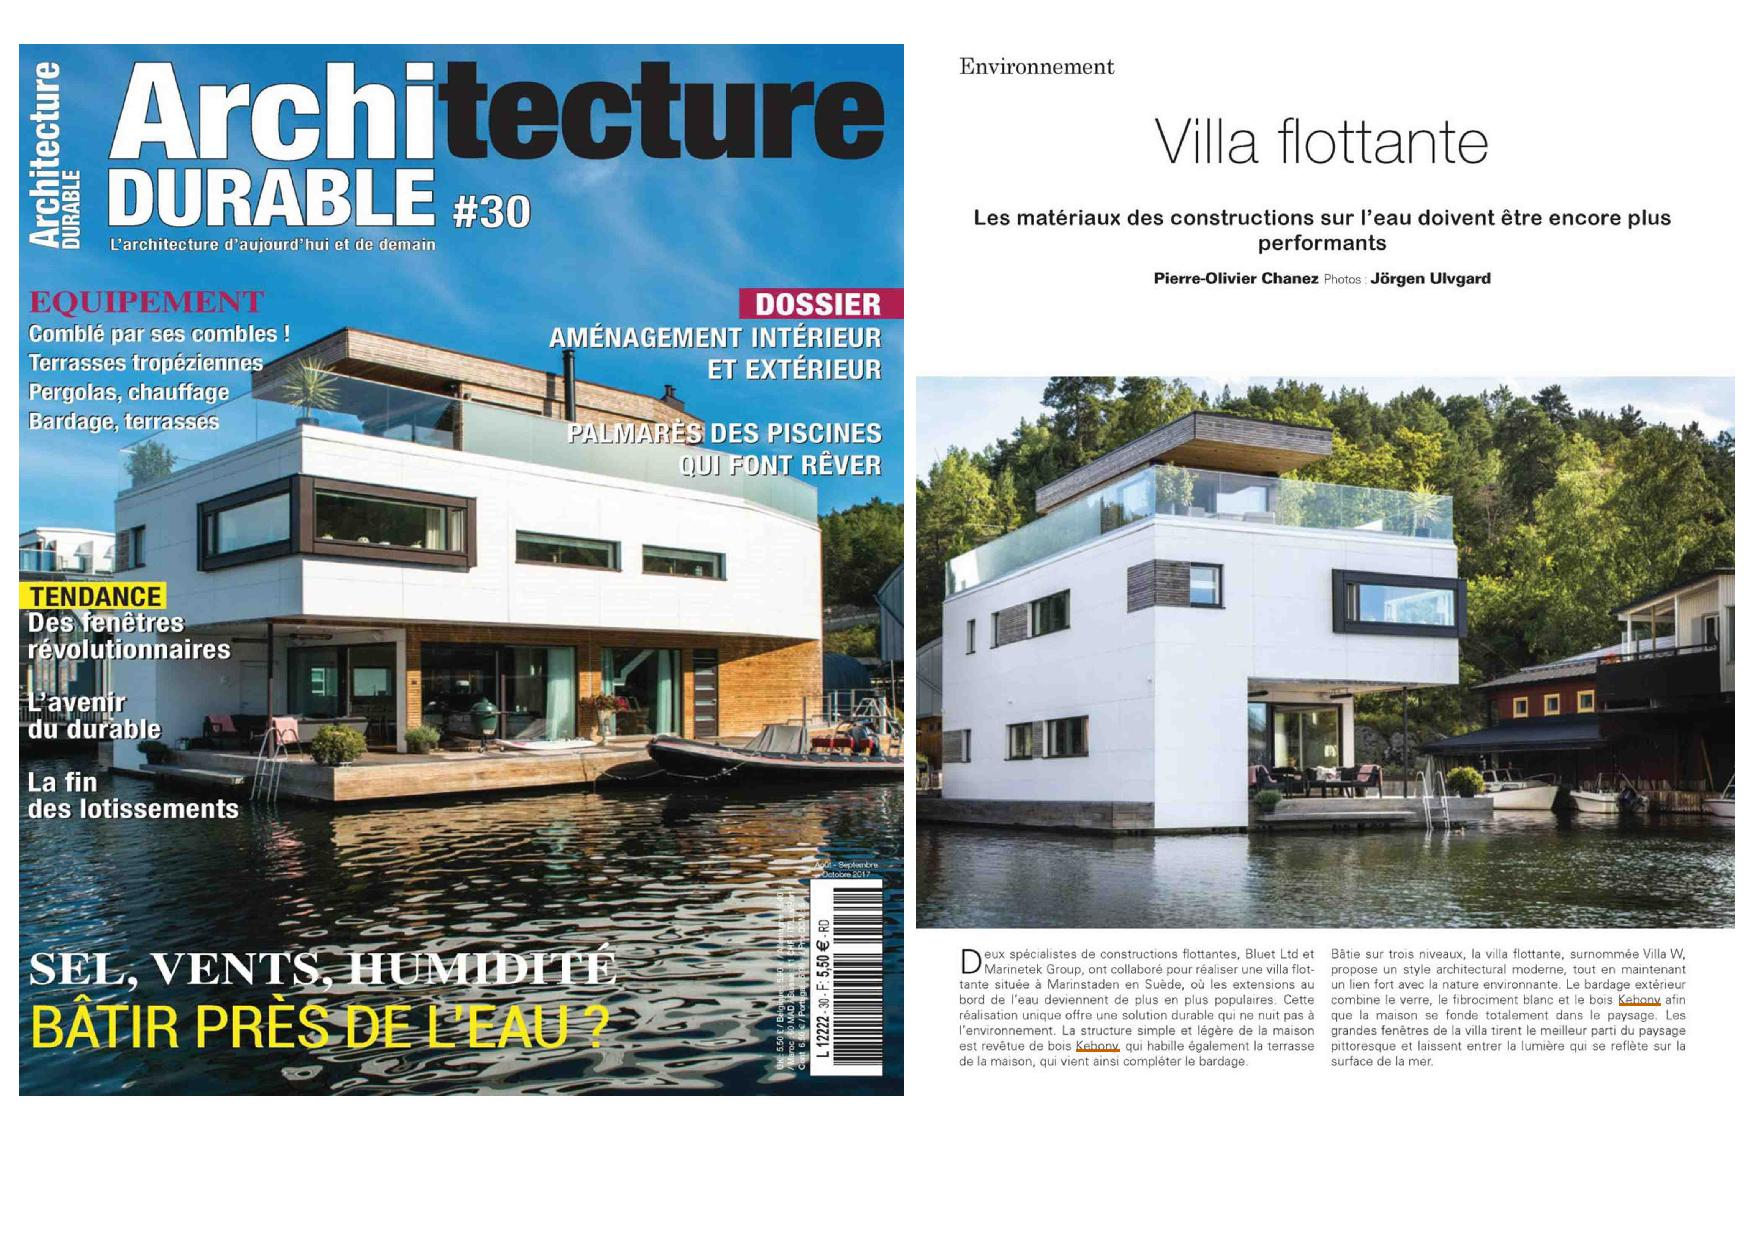 Architecture Durable aout 2017.jpg